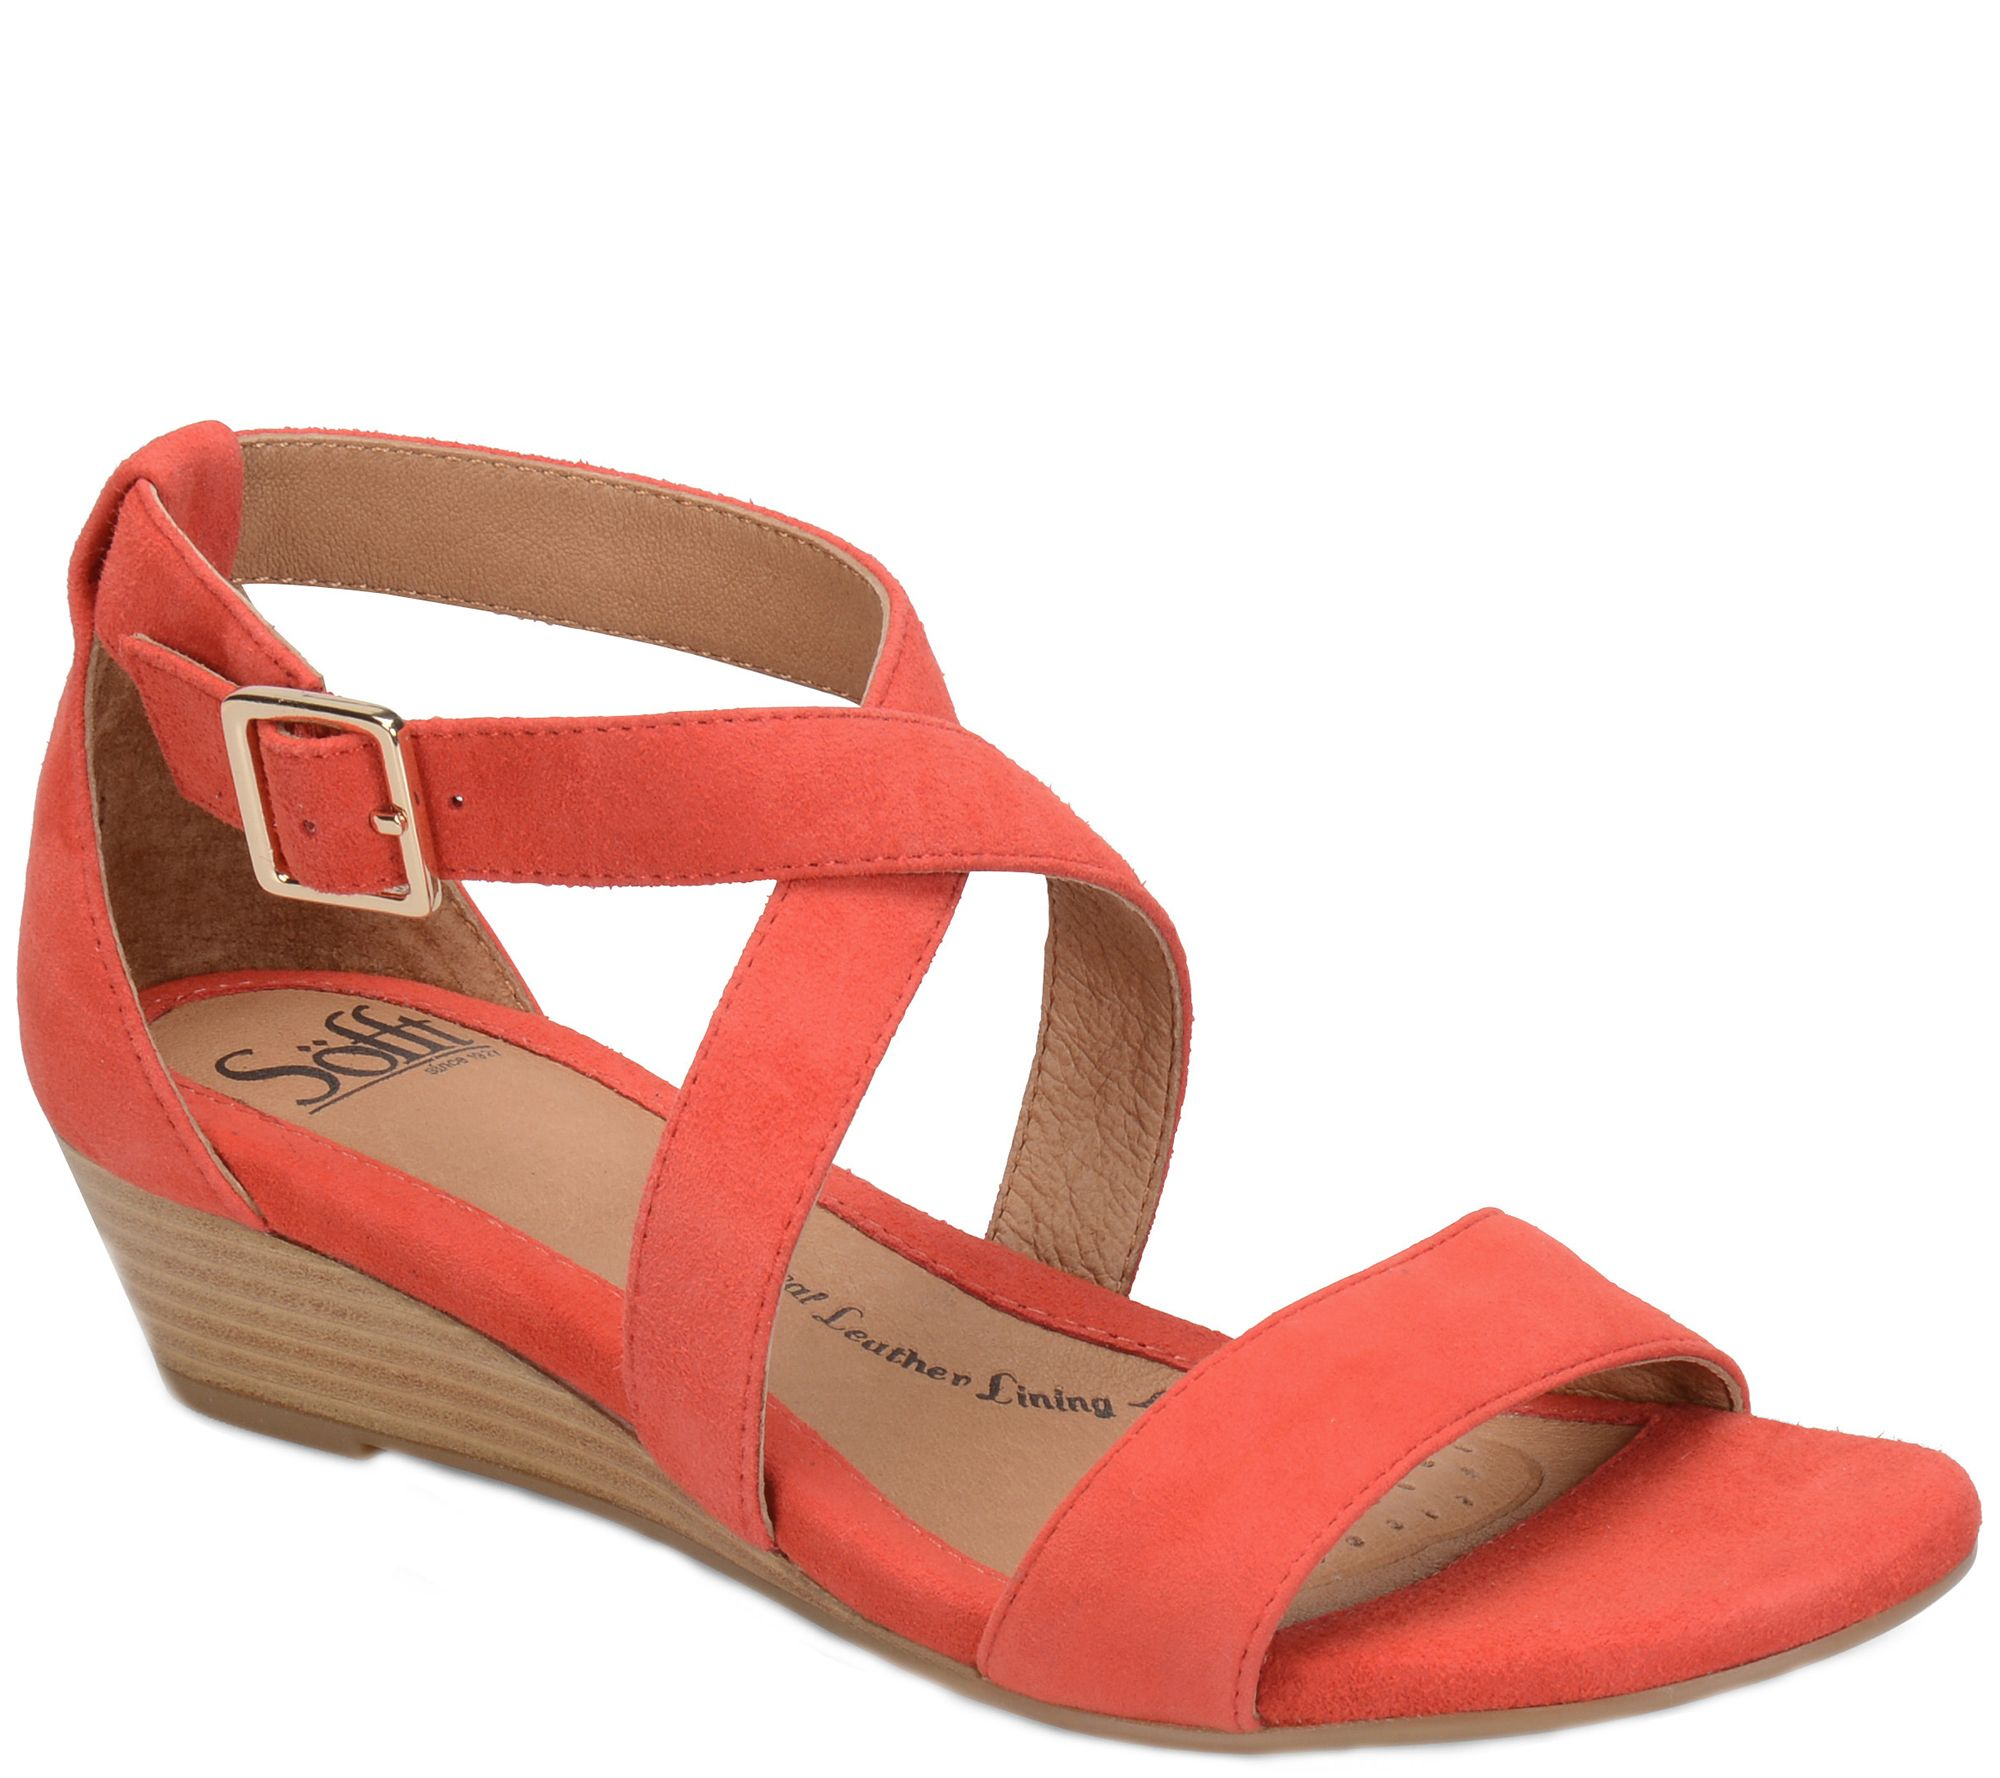 5c8d71666009 Sofft Leather Wedge Sandals - Innis - Page 1 — QVC.com